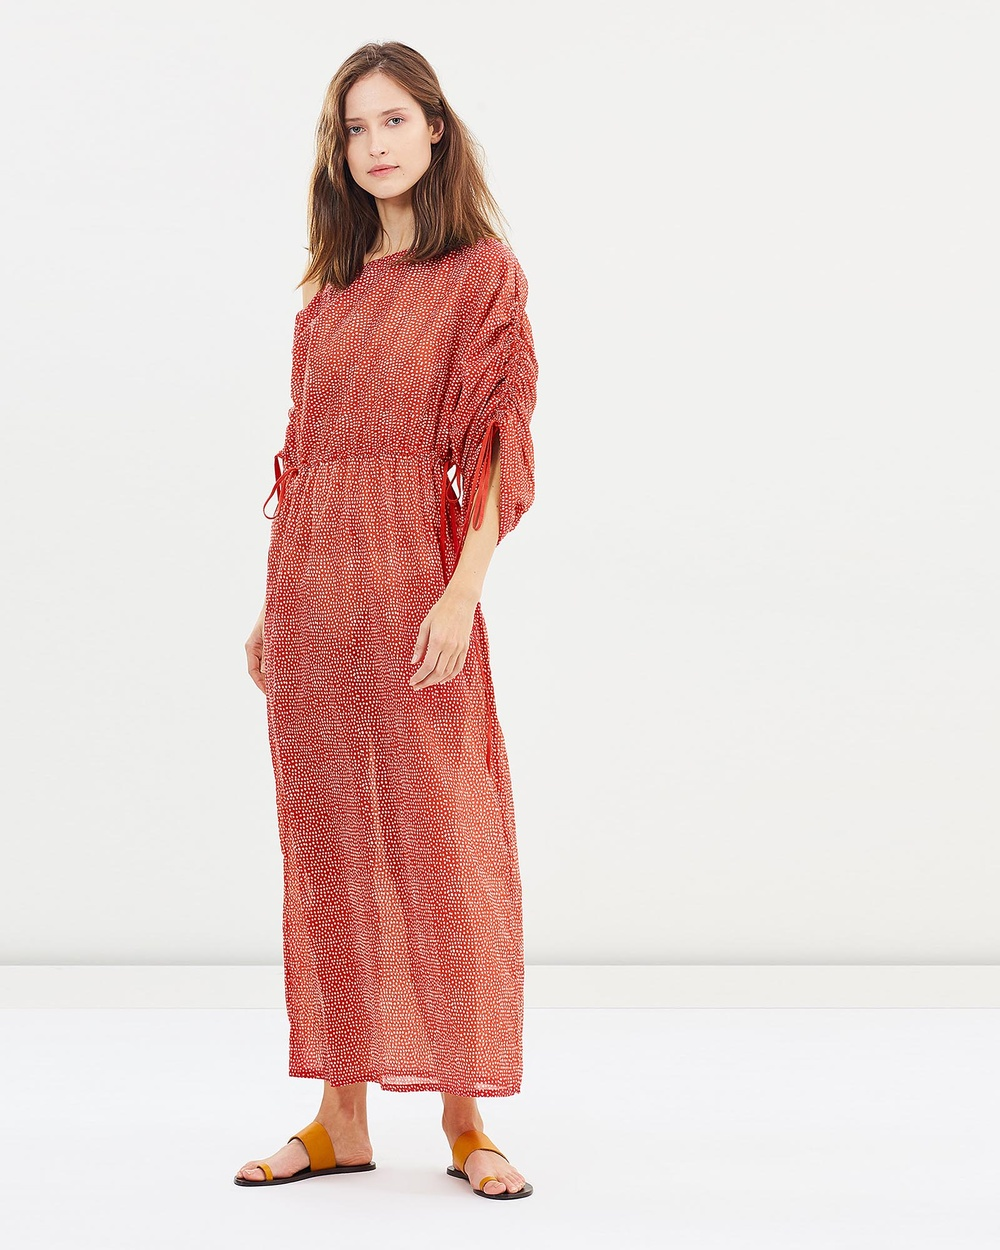 Morrison Print Joie Asymmetrical Dress